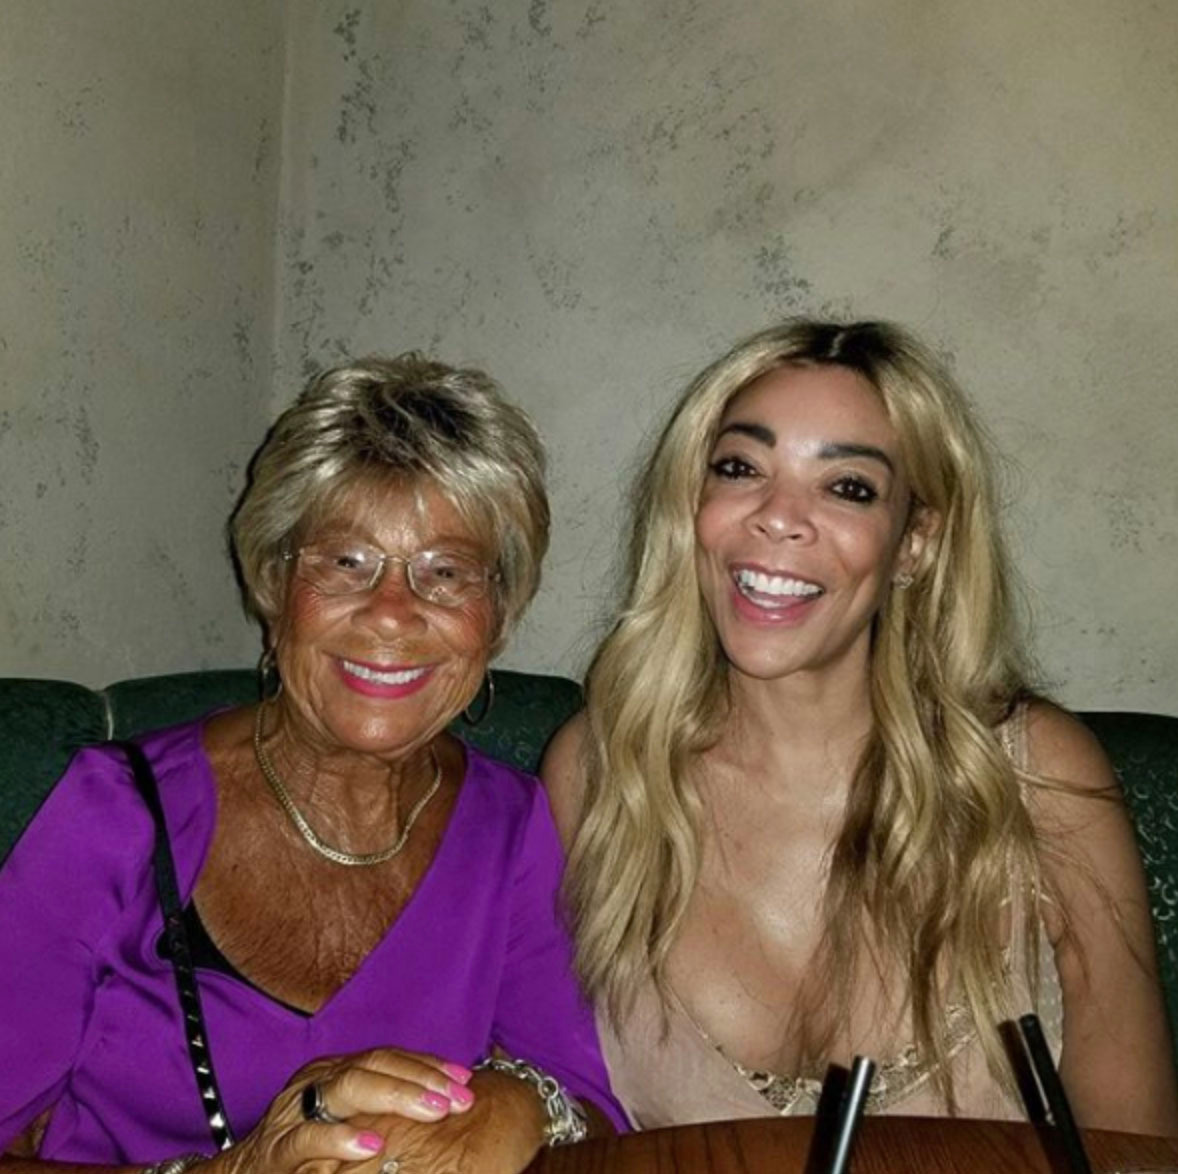 wendy-williams-brother-blasts-her-for-not-attending-her-mothers-funeral-video